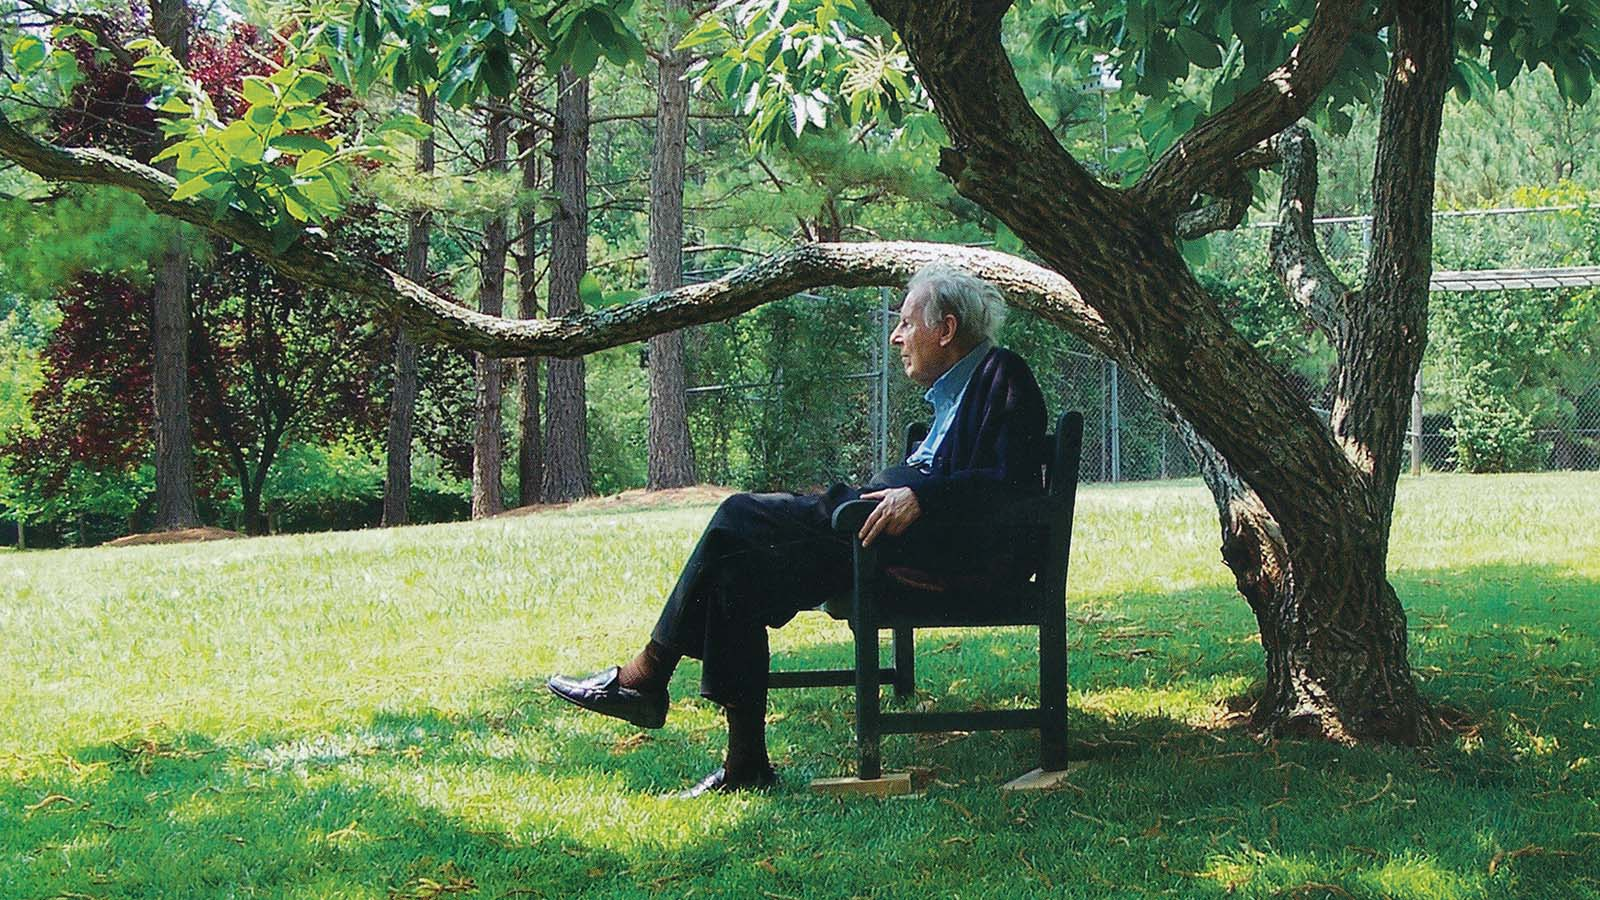 Thomas Berry sits under a tree. Photo courtesy of Mary Evelyn Tucker and John Grim, taken by Marnie Muller.